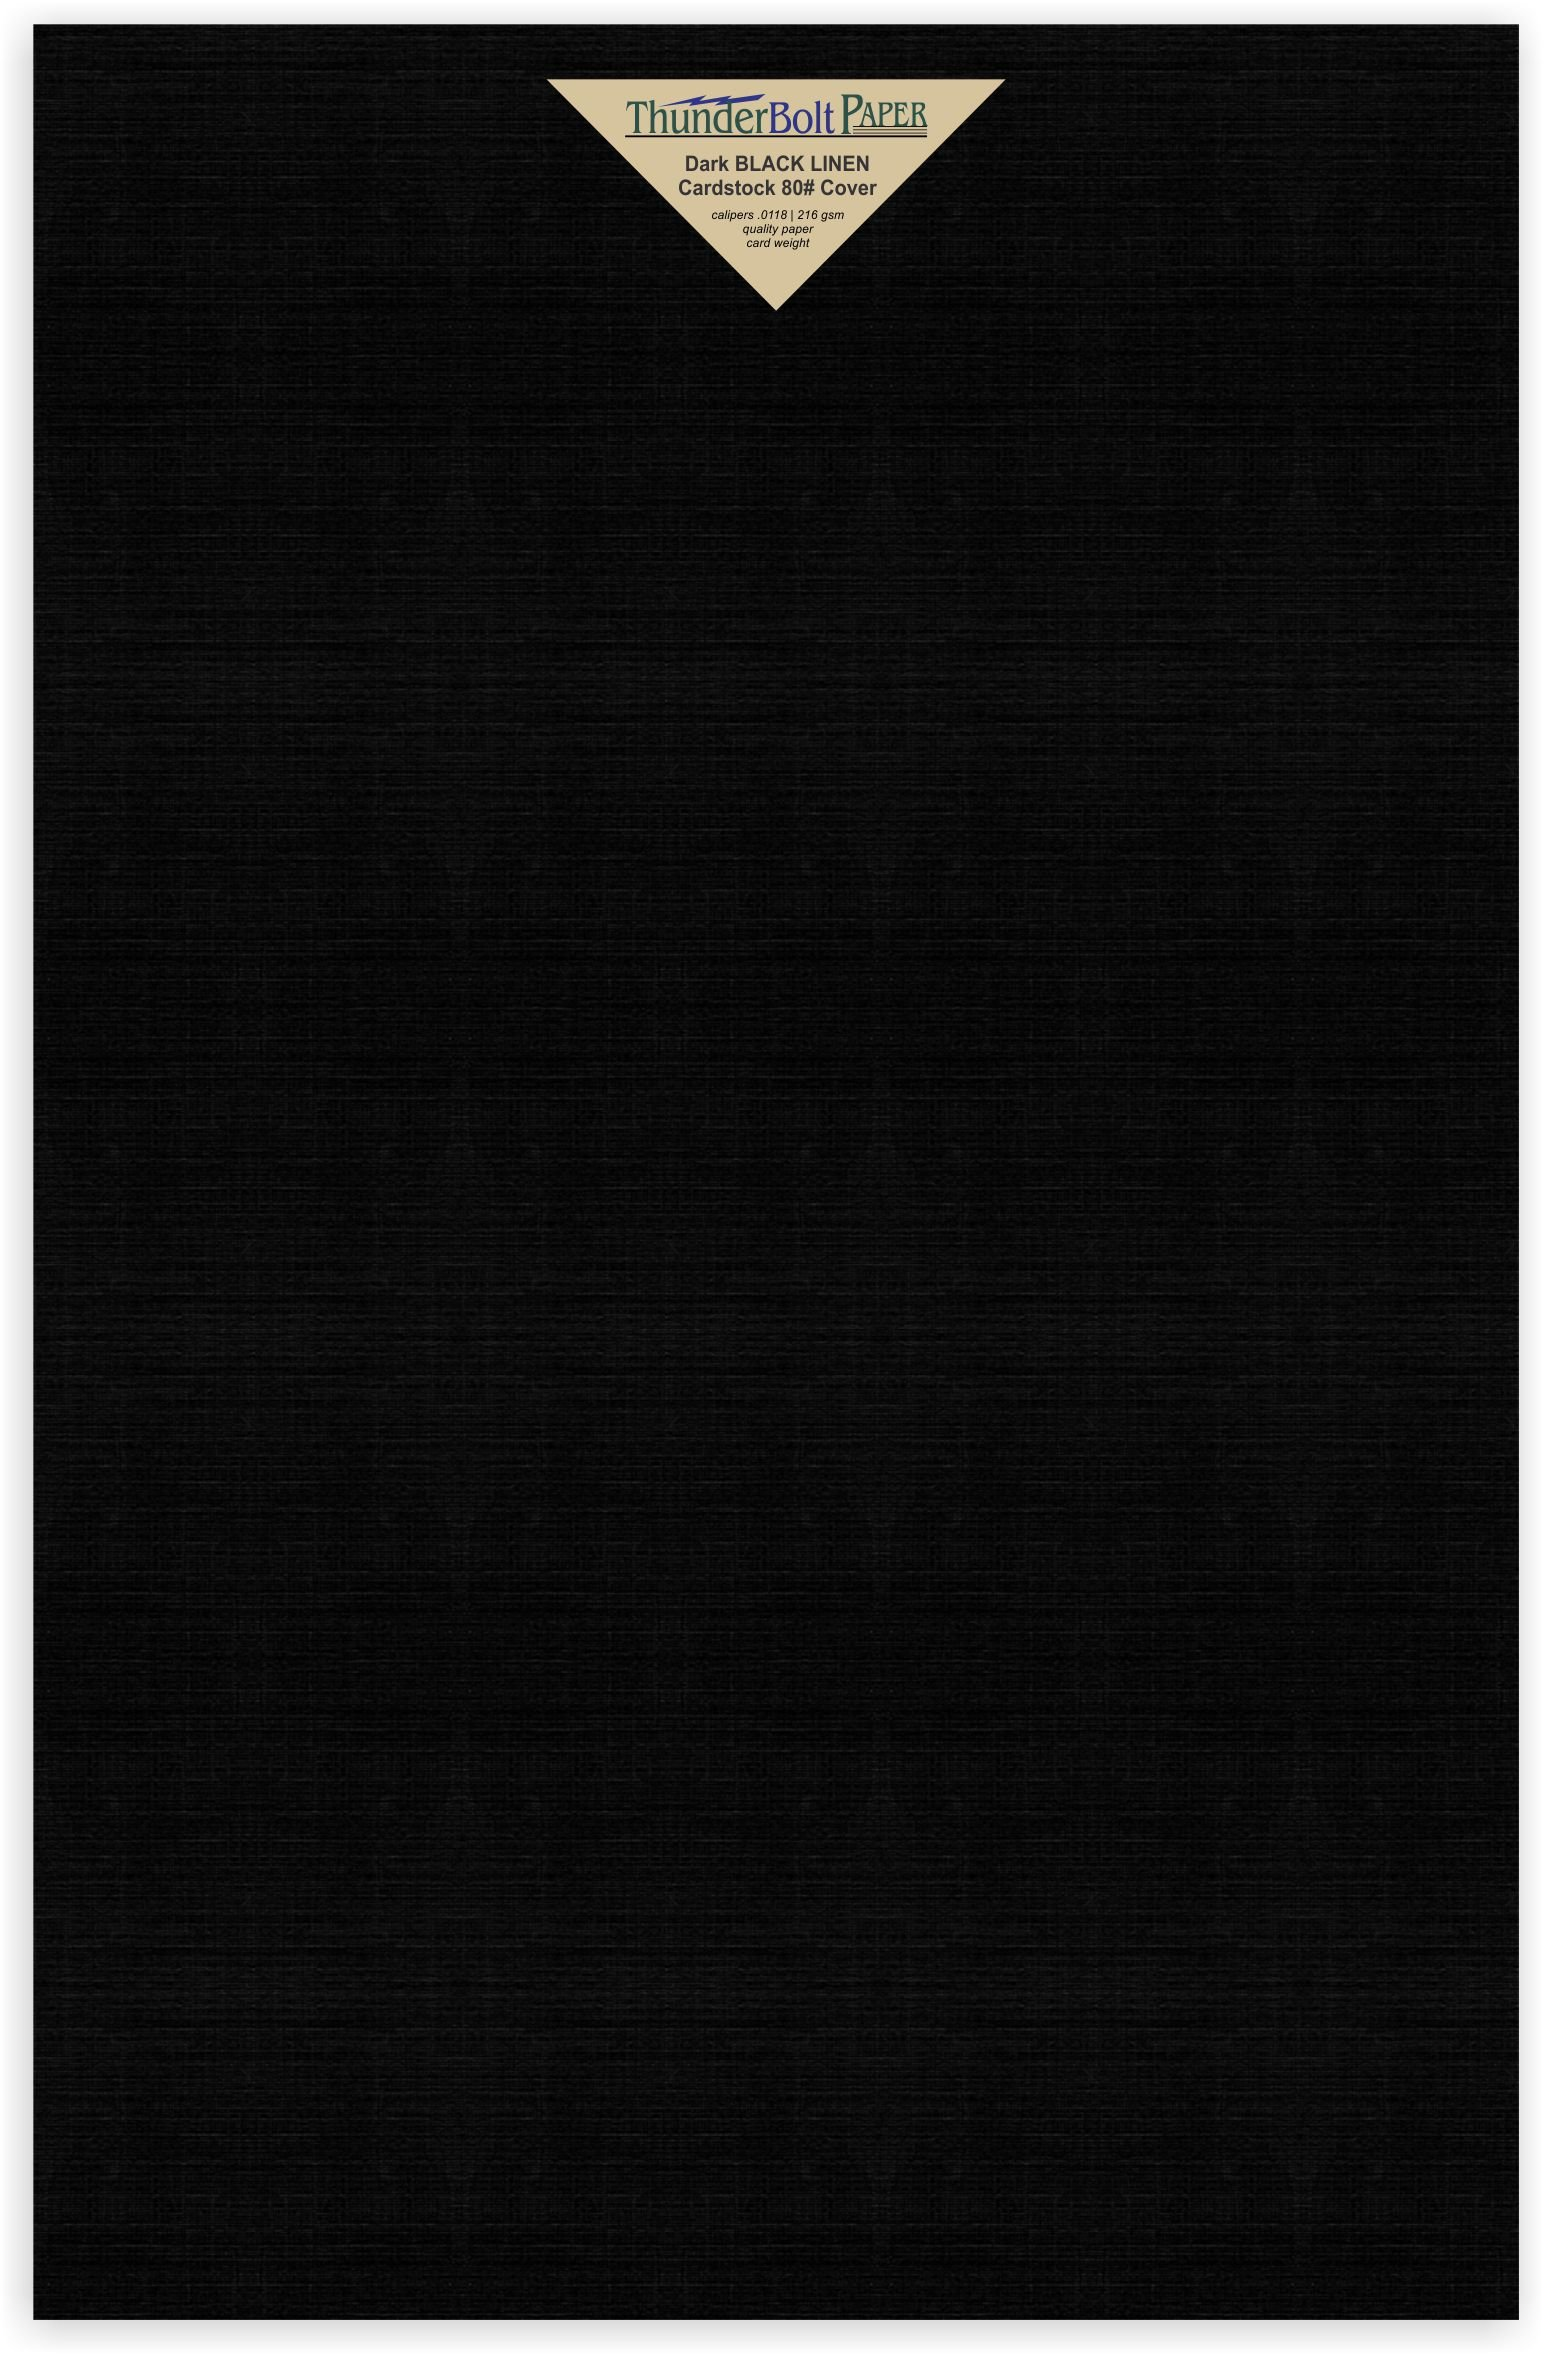 25 Black Linen 80# Cover Paper Sheets - 12'' X 18'' (12X18 Inches) Large|Poster Size - Card Weight - Deep Dye, Fine Linen Textured Finish - Quality Cardstock